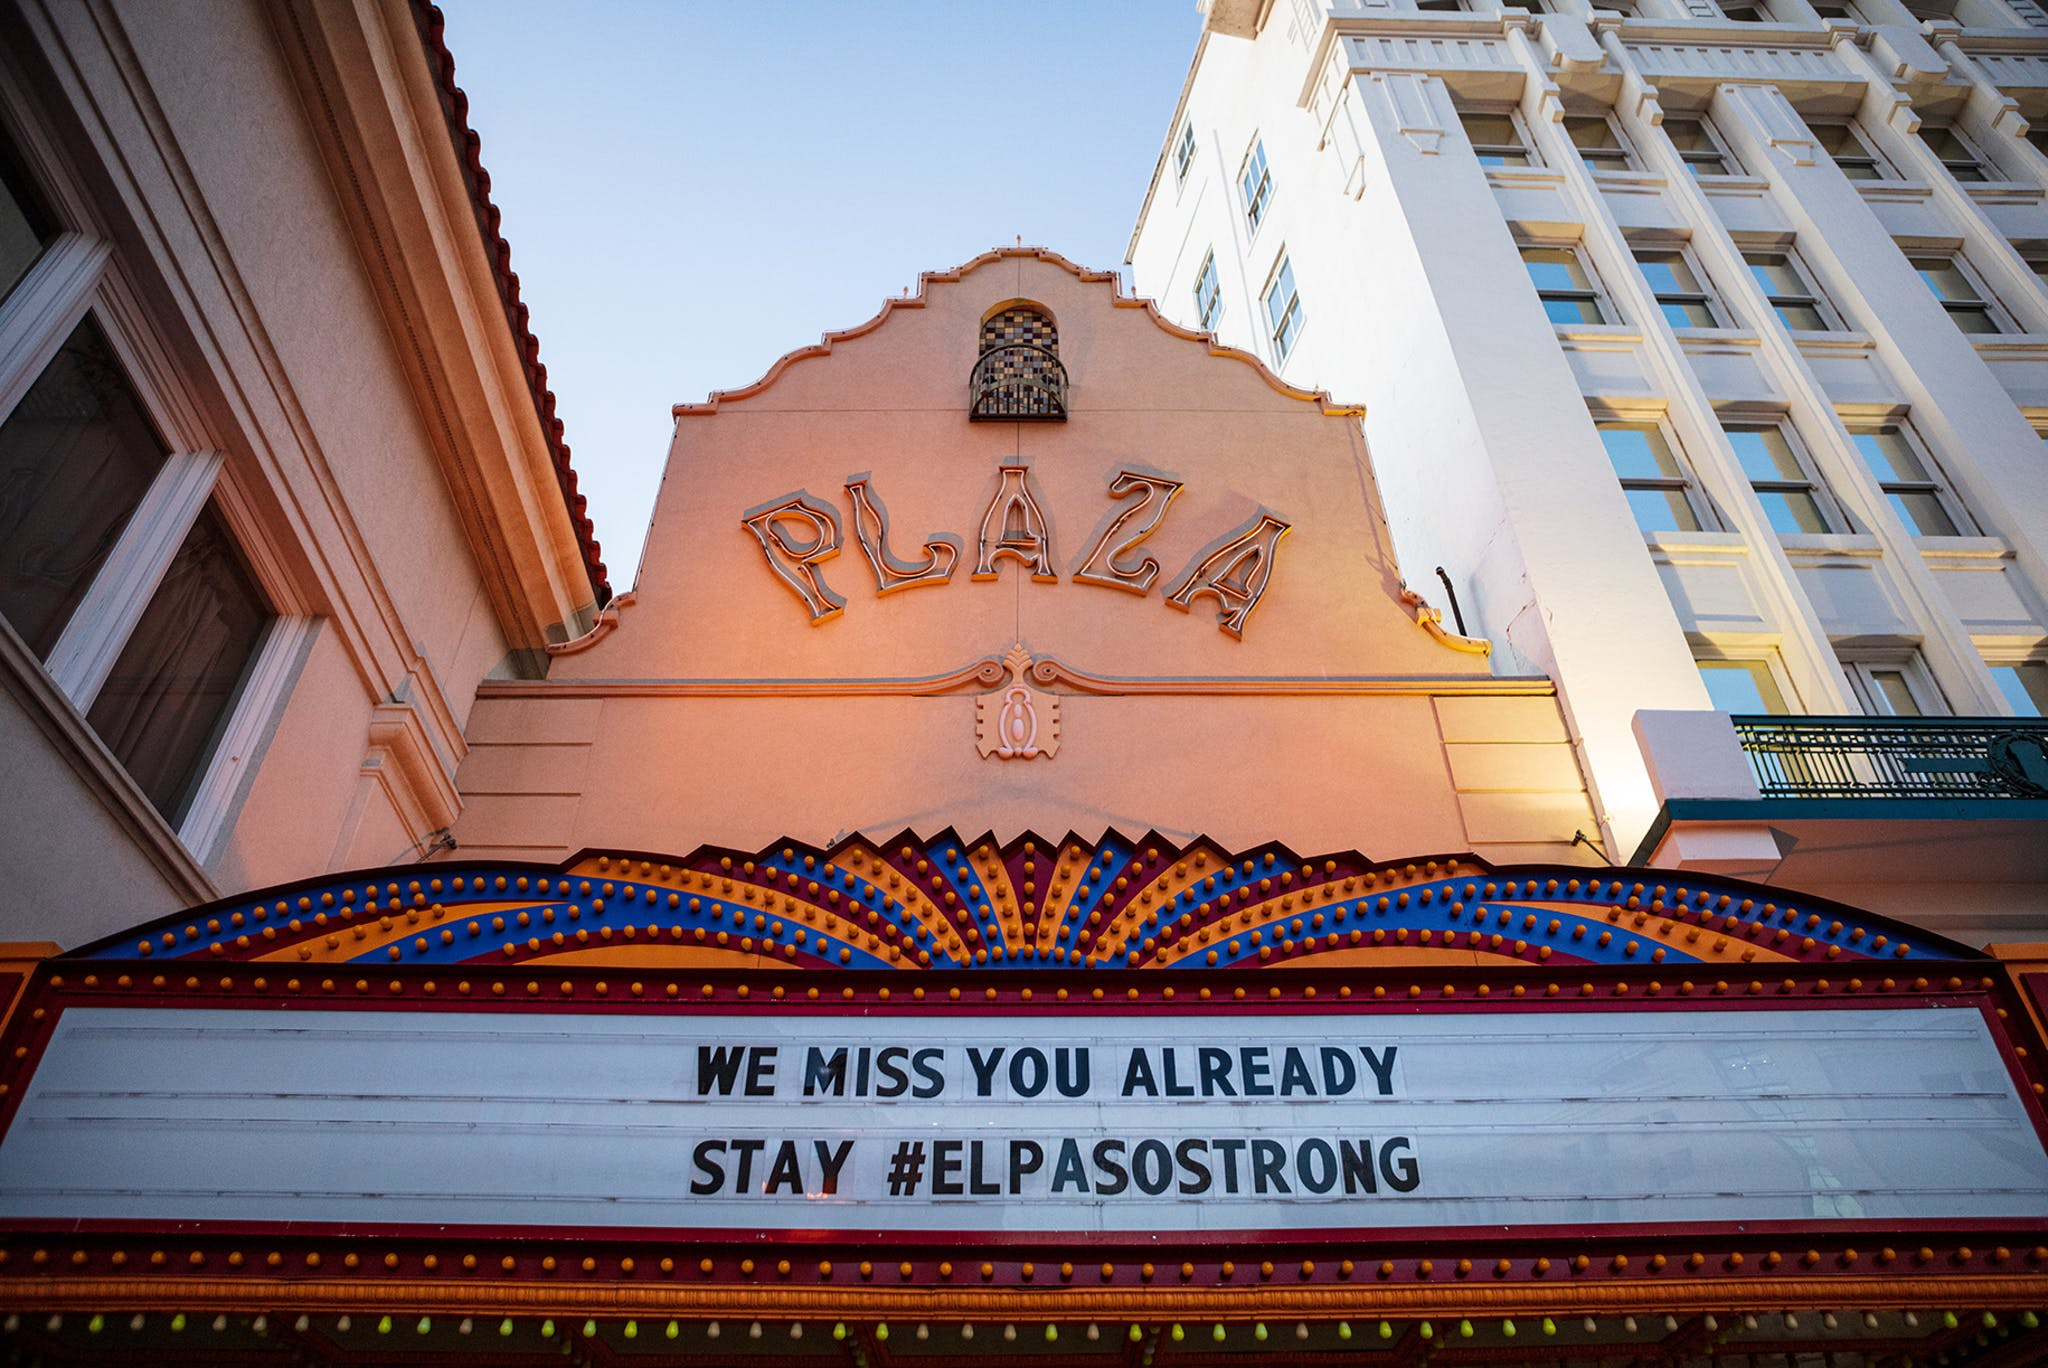 Rather than featuring upcoming acts, the marquee on El Paso's historic Plaza Theatre offers encouragement.